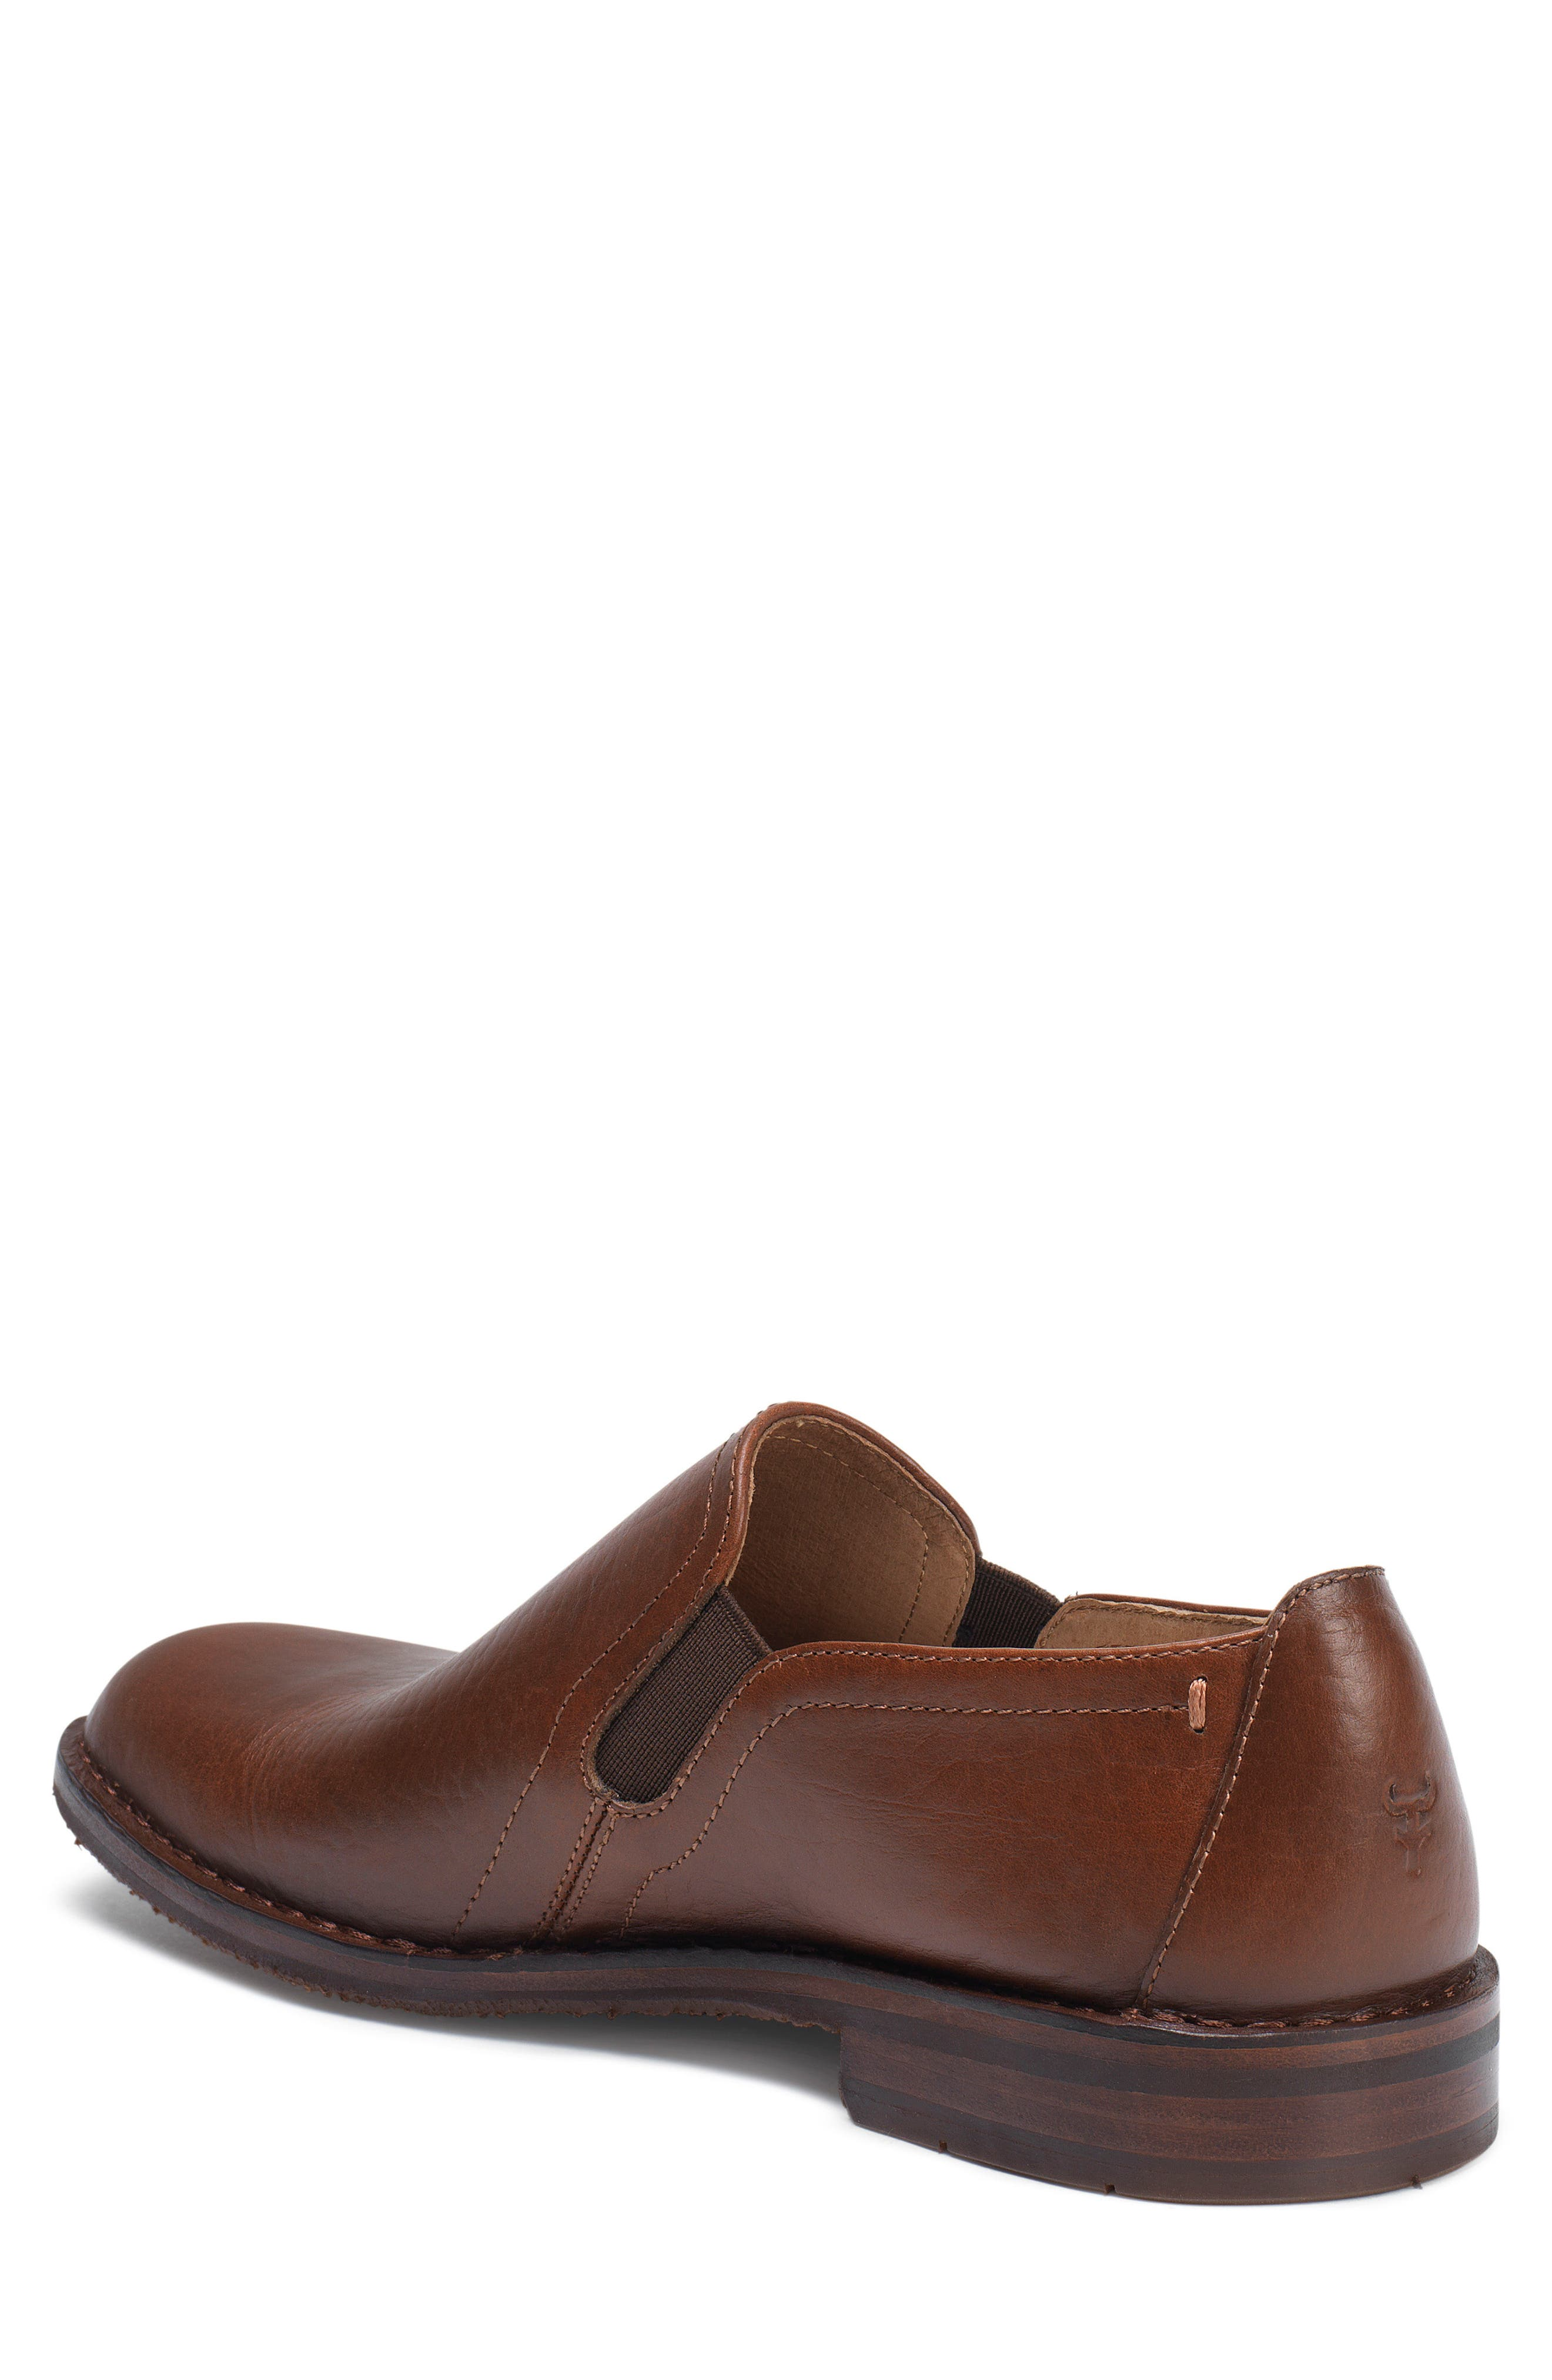 Alternate Image 2  - Trask 'Blaine' Venetian Loafer (Men)